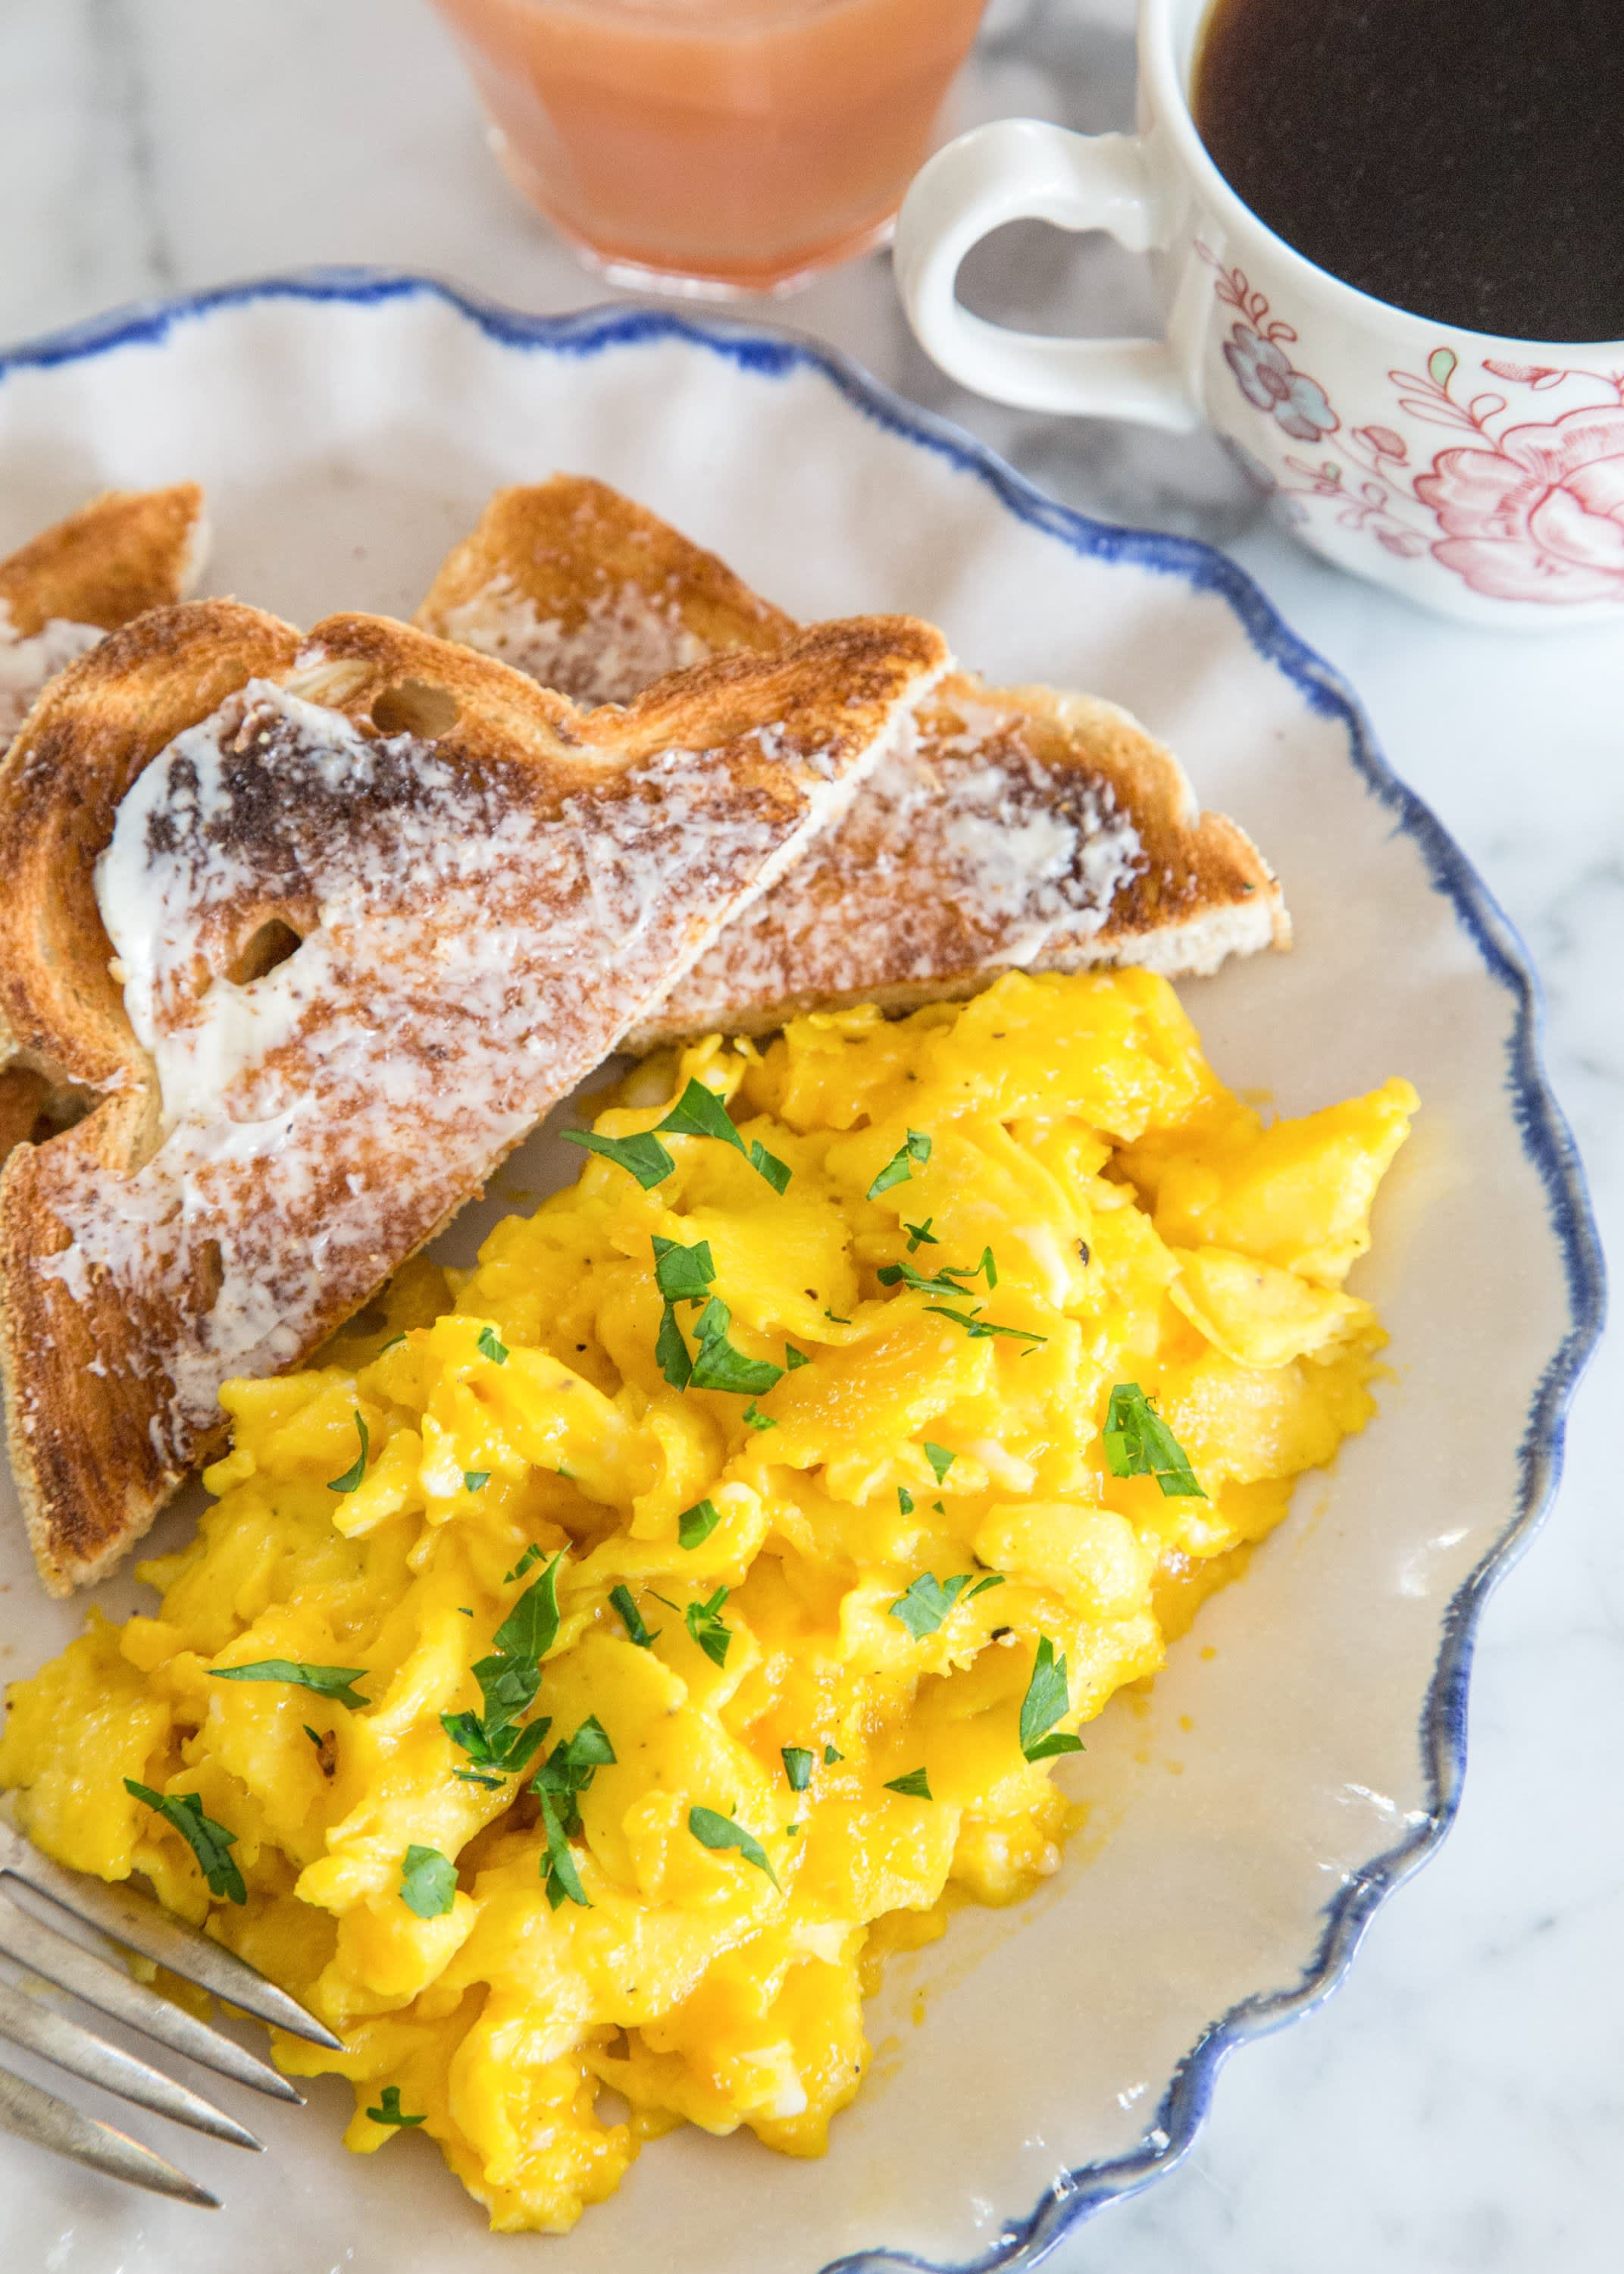 How To Make Soft, Creamy Scrambled Eggs: gallery image 14